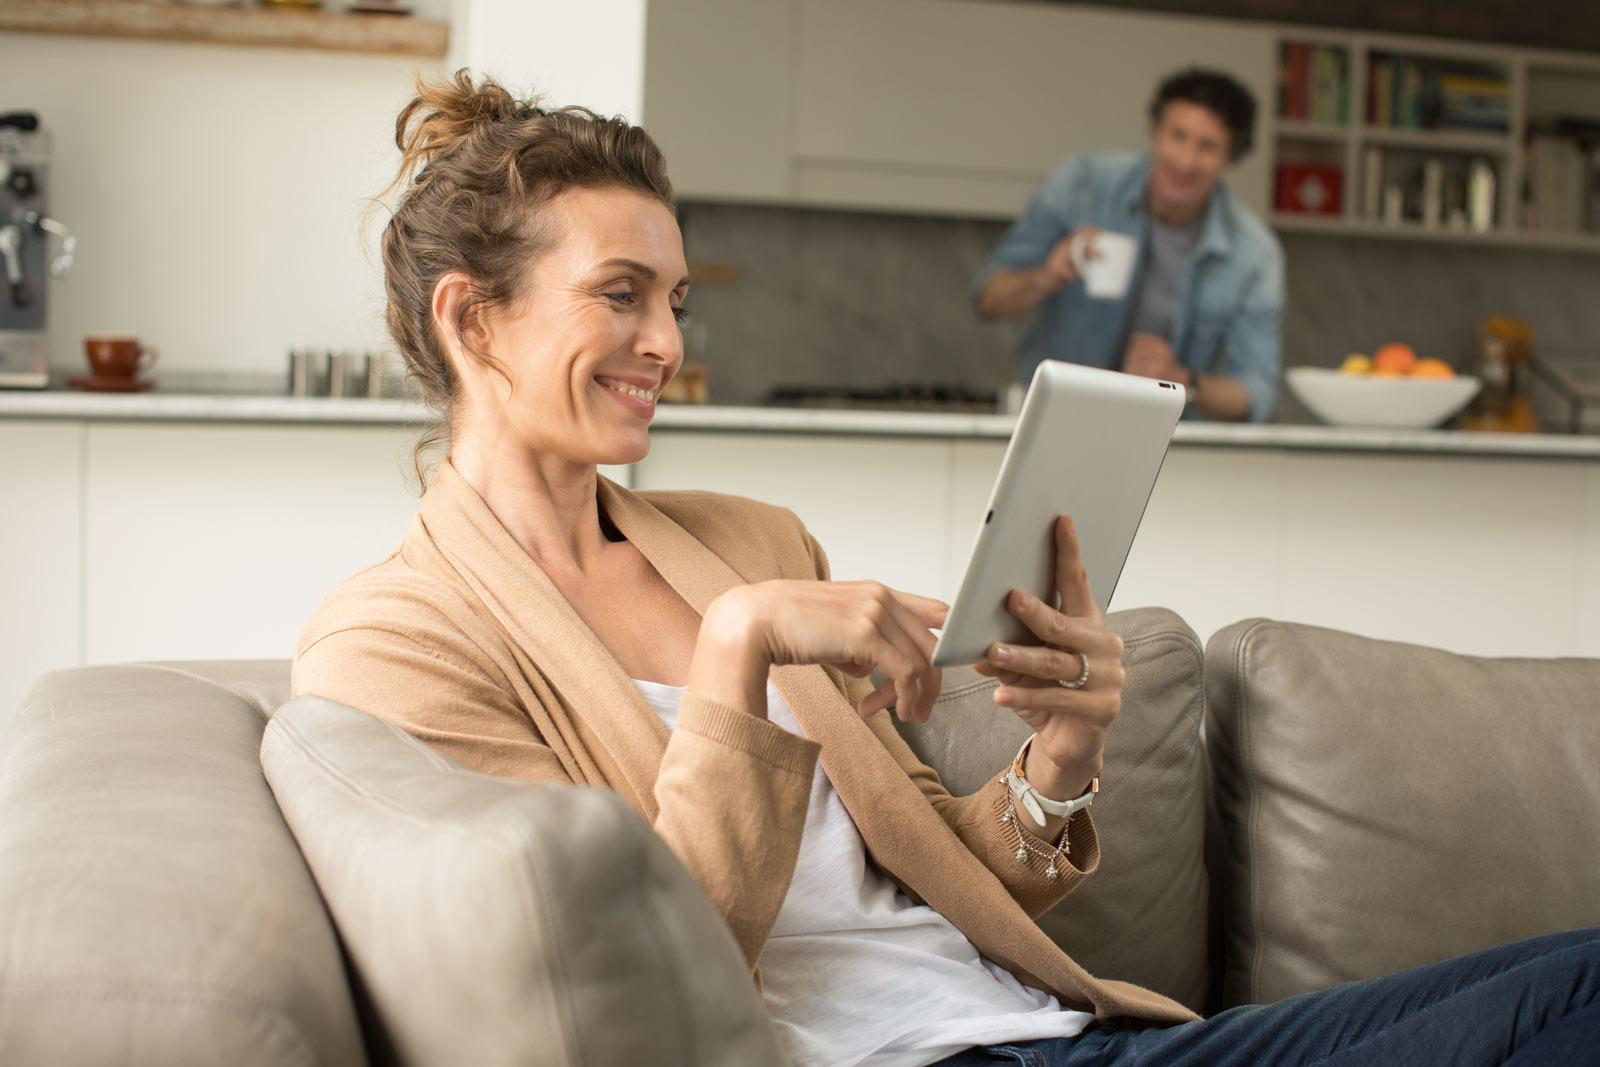 woman-sitting-on-couch-with-tablet